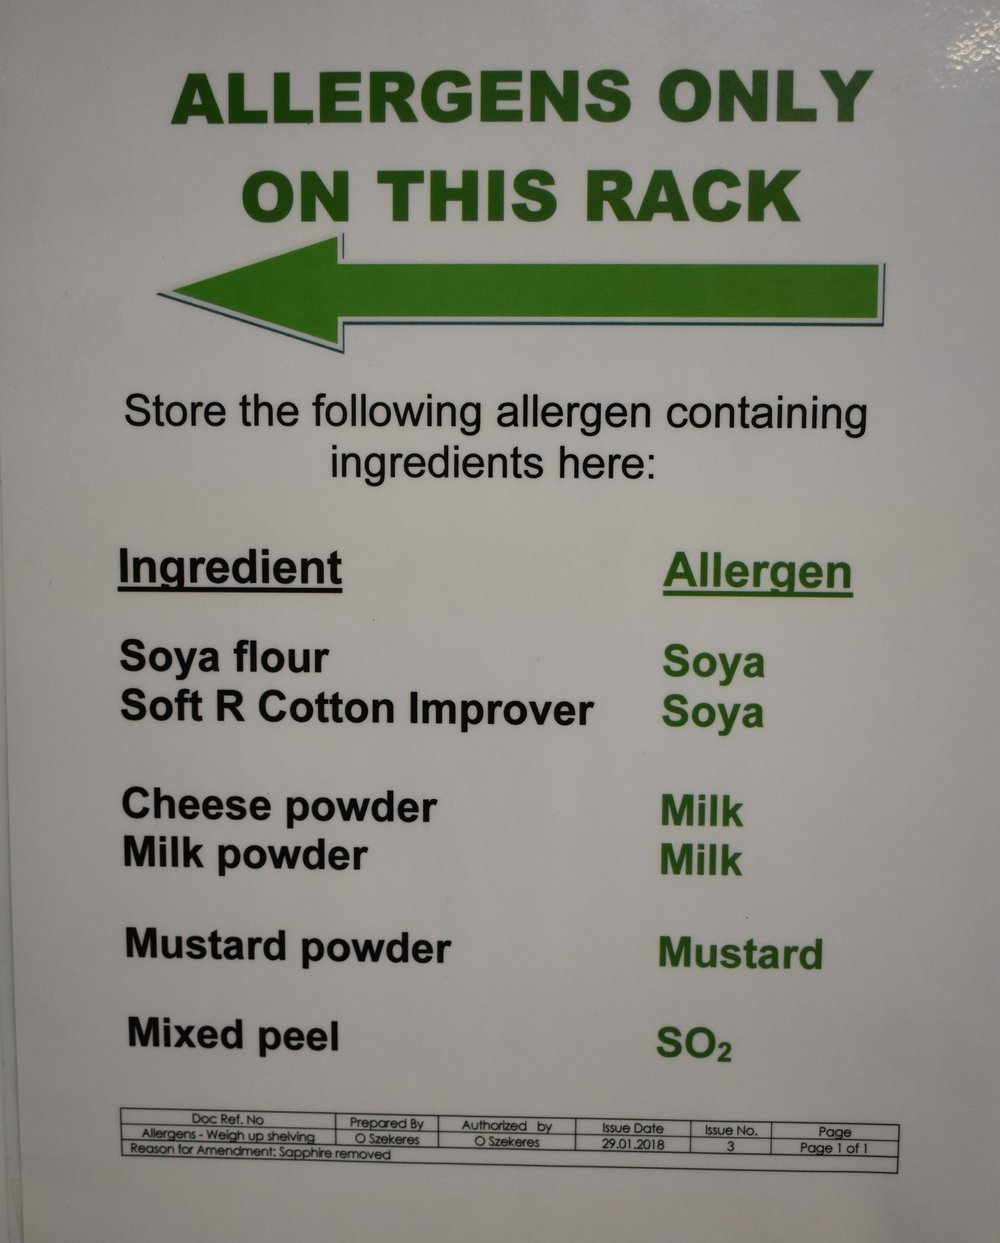 Clear instructions for placing allergen containing ingredients on the allergen shelf